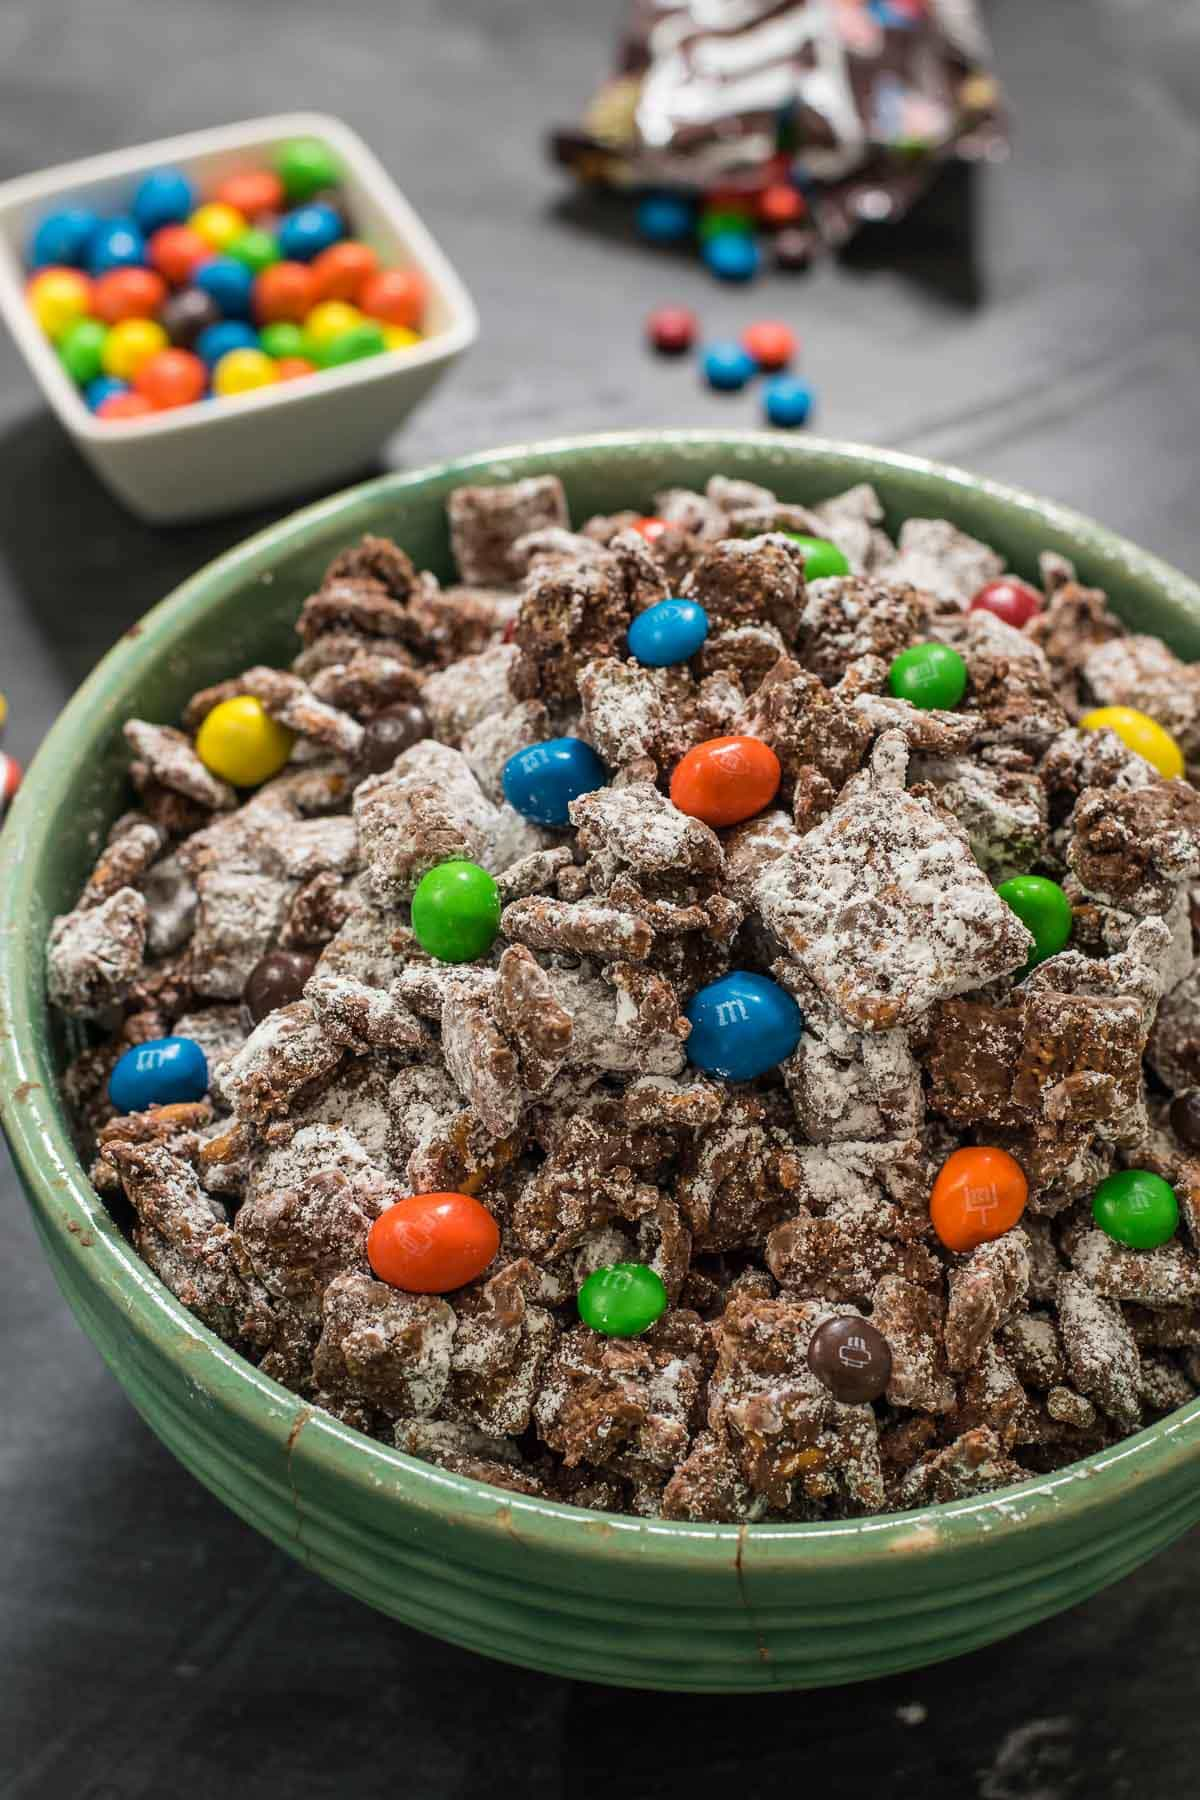 This easy no bake Chocolate Peanut Butter Puppy Chow is loaded with M&Ms pretzels and two kinds of cereal.